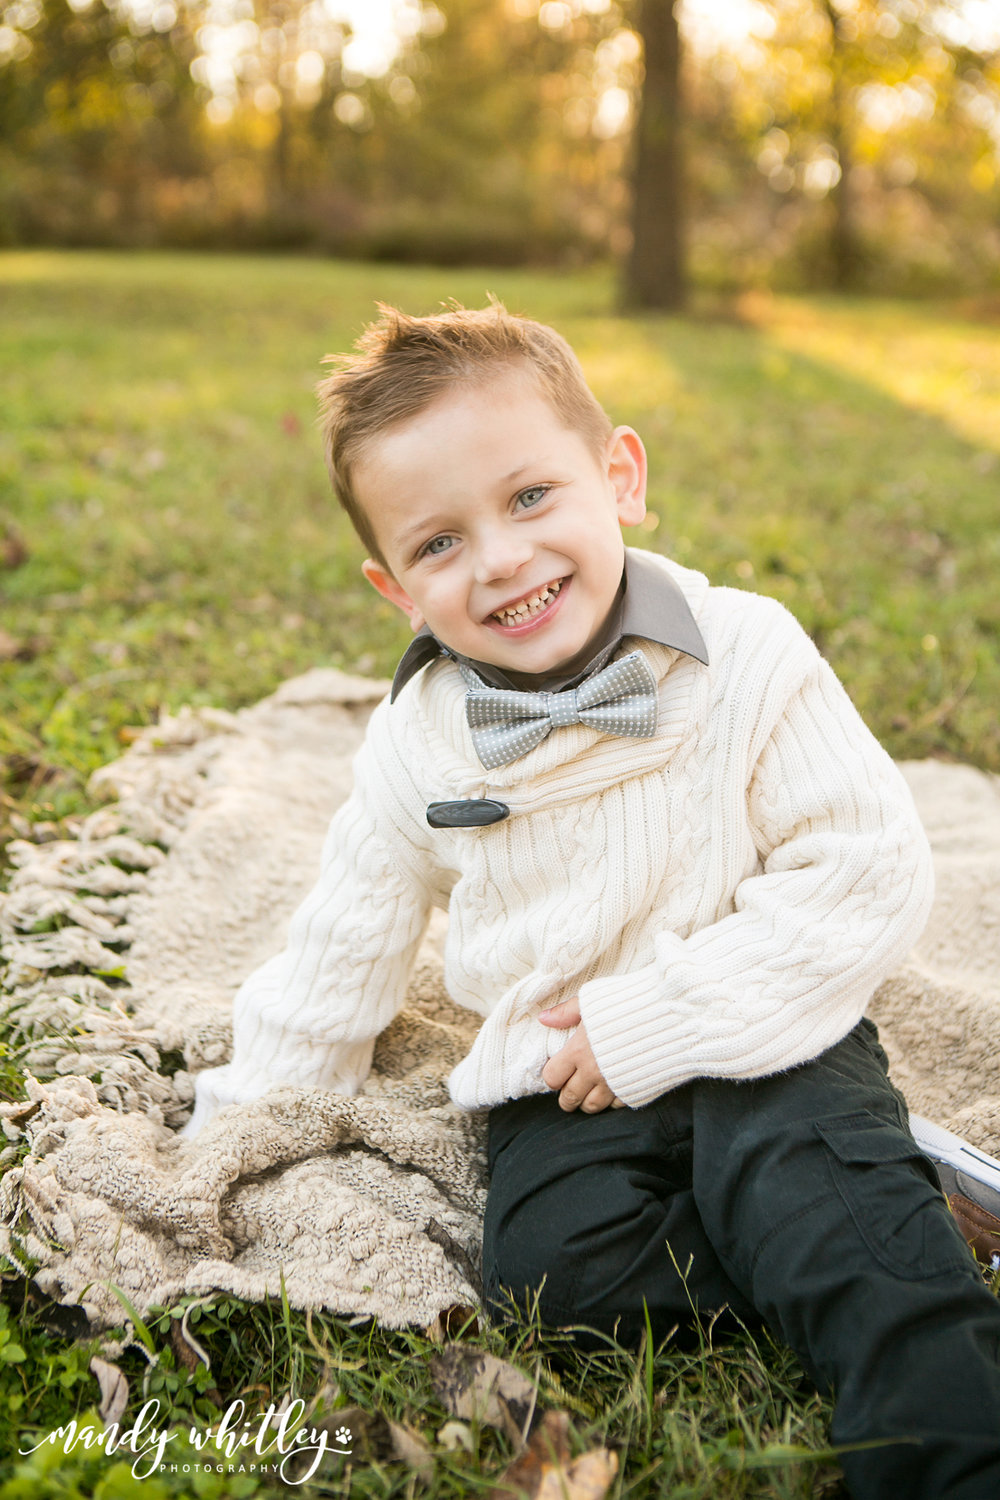 Best Child and Family Photographer in Nashville